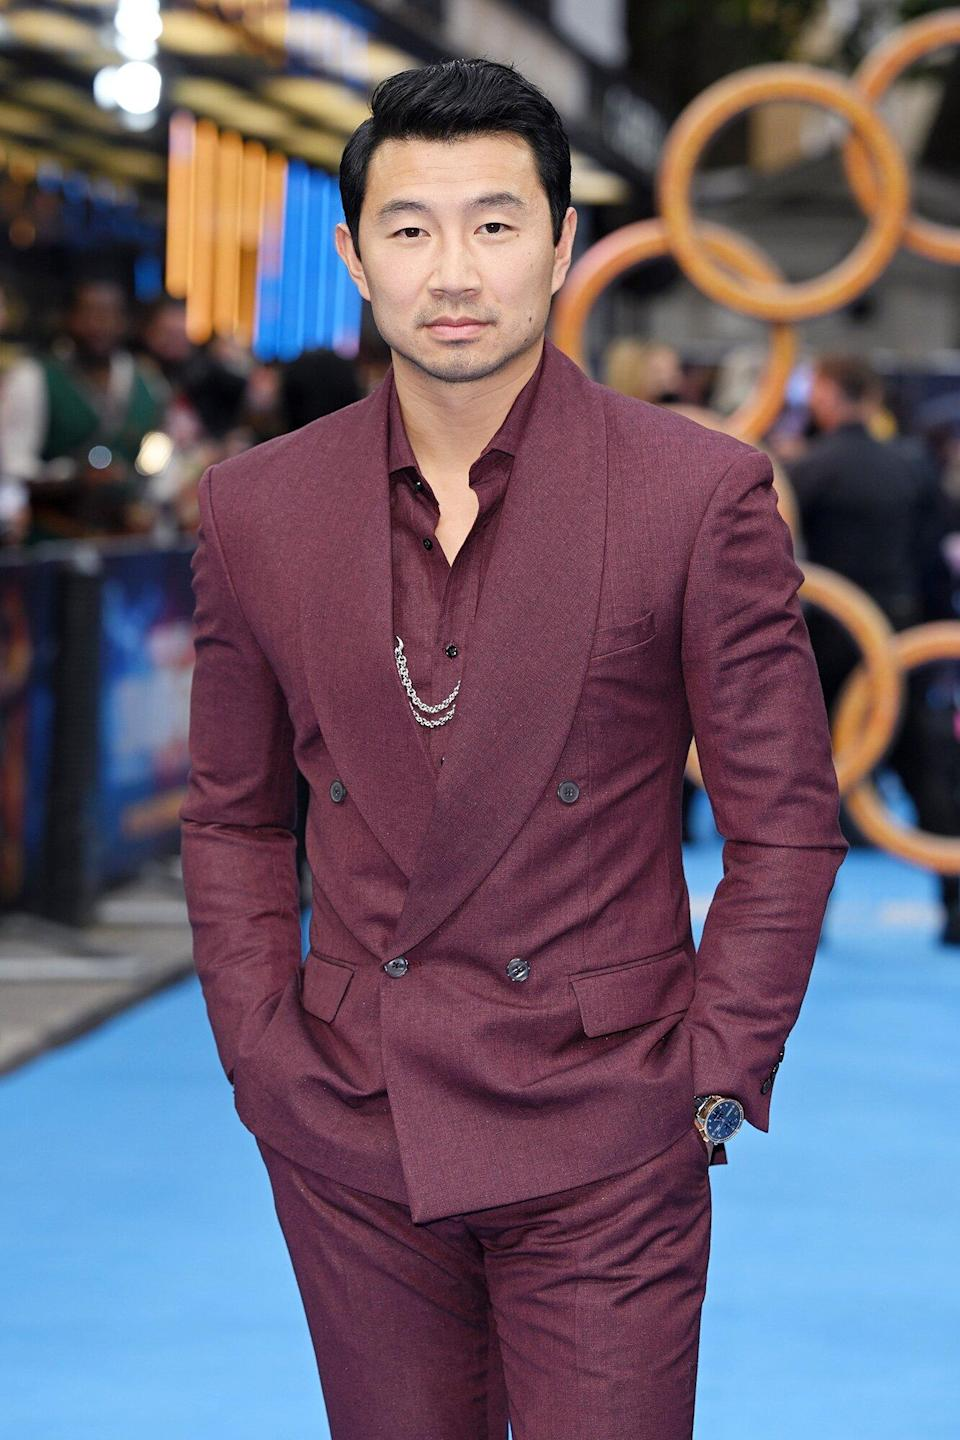 """Simu Liu attends the UK premiere of """"Shang-Chi and the Legend of the Ten Rings"""" at The Curzon Mayfair on August 26, 2021 in London, England."""